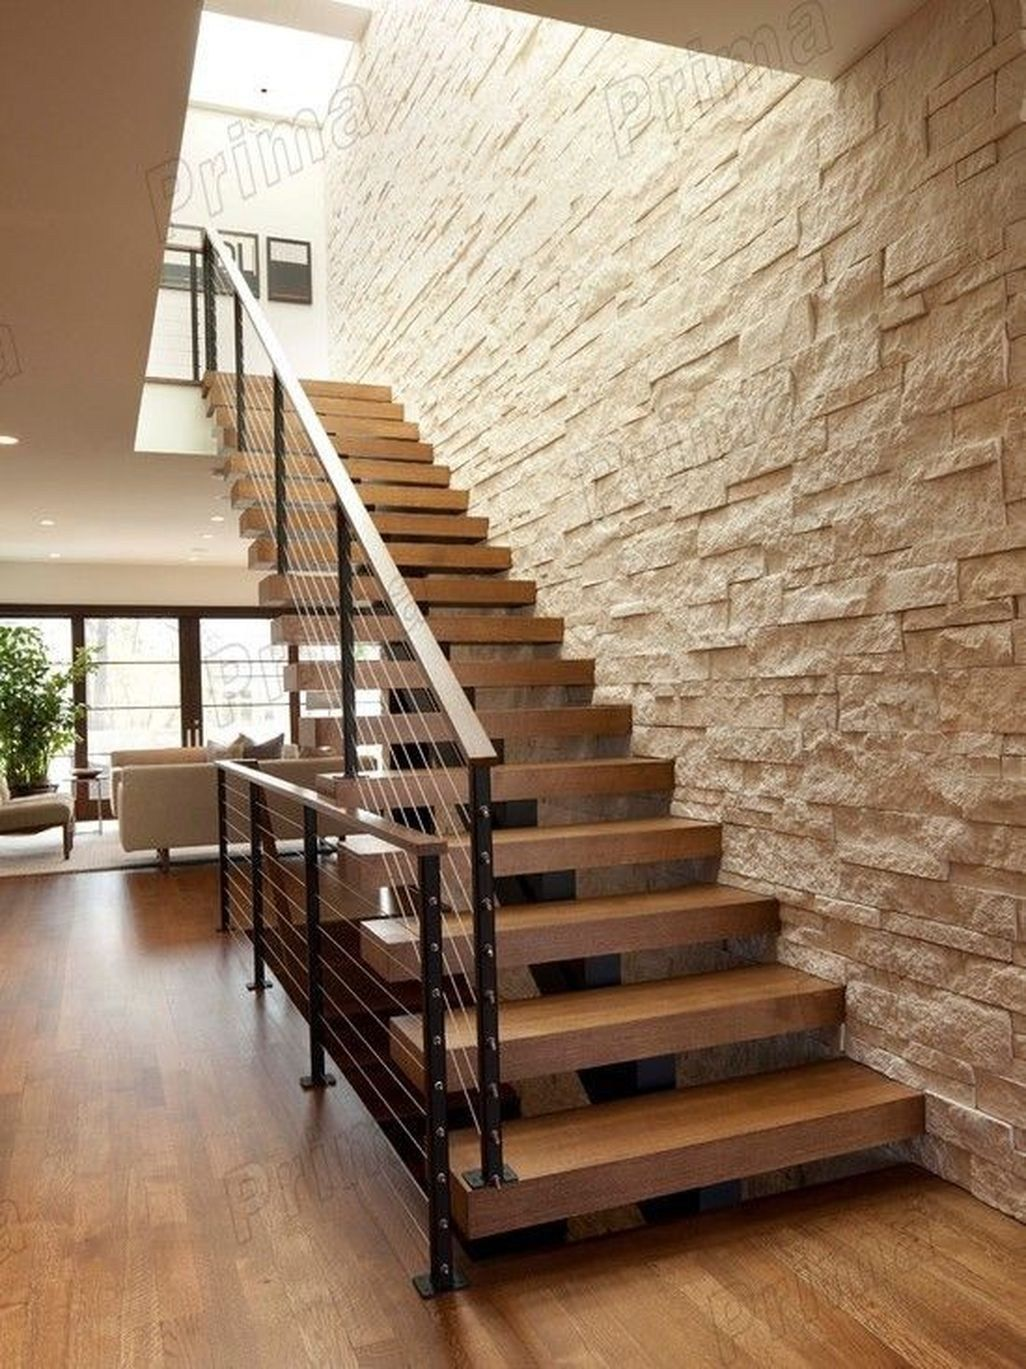 38  Amazing Wooden Stairs Ideas for Your Home  Inspirational Pin  38  Amazing Wooden Stairs Ideas for Your Home